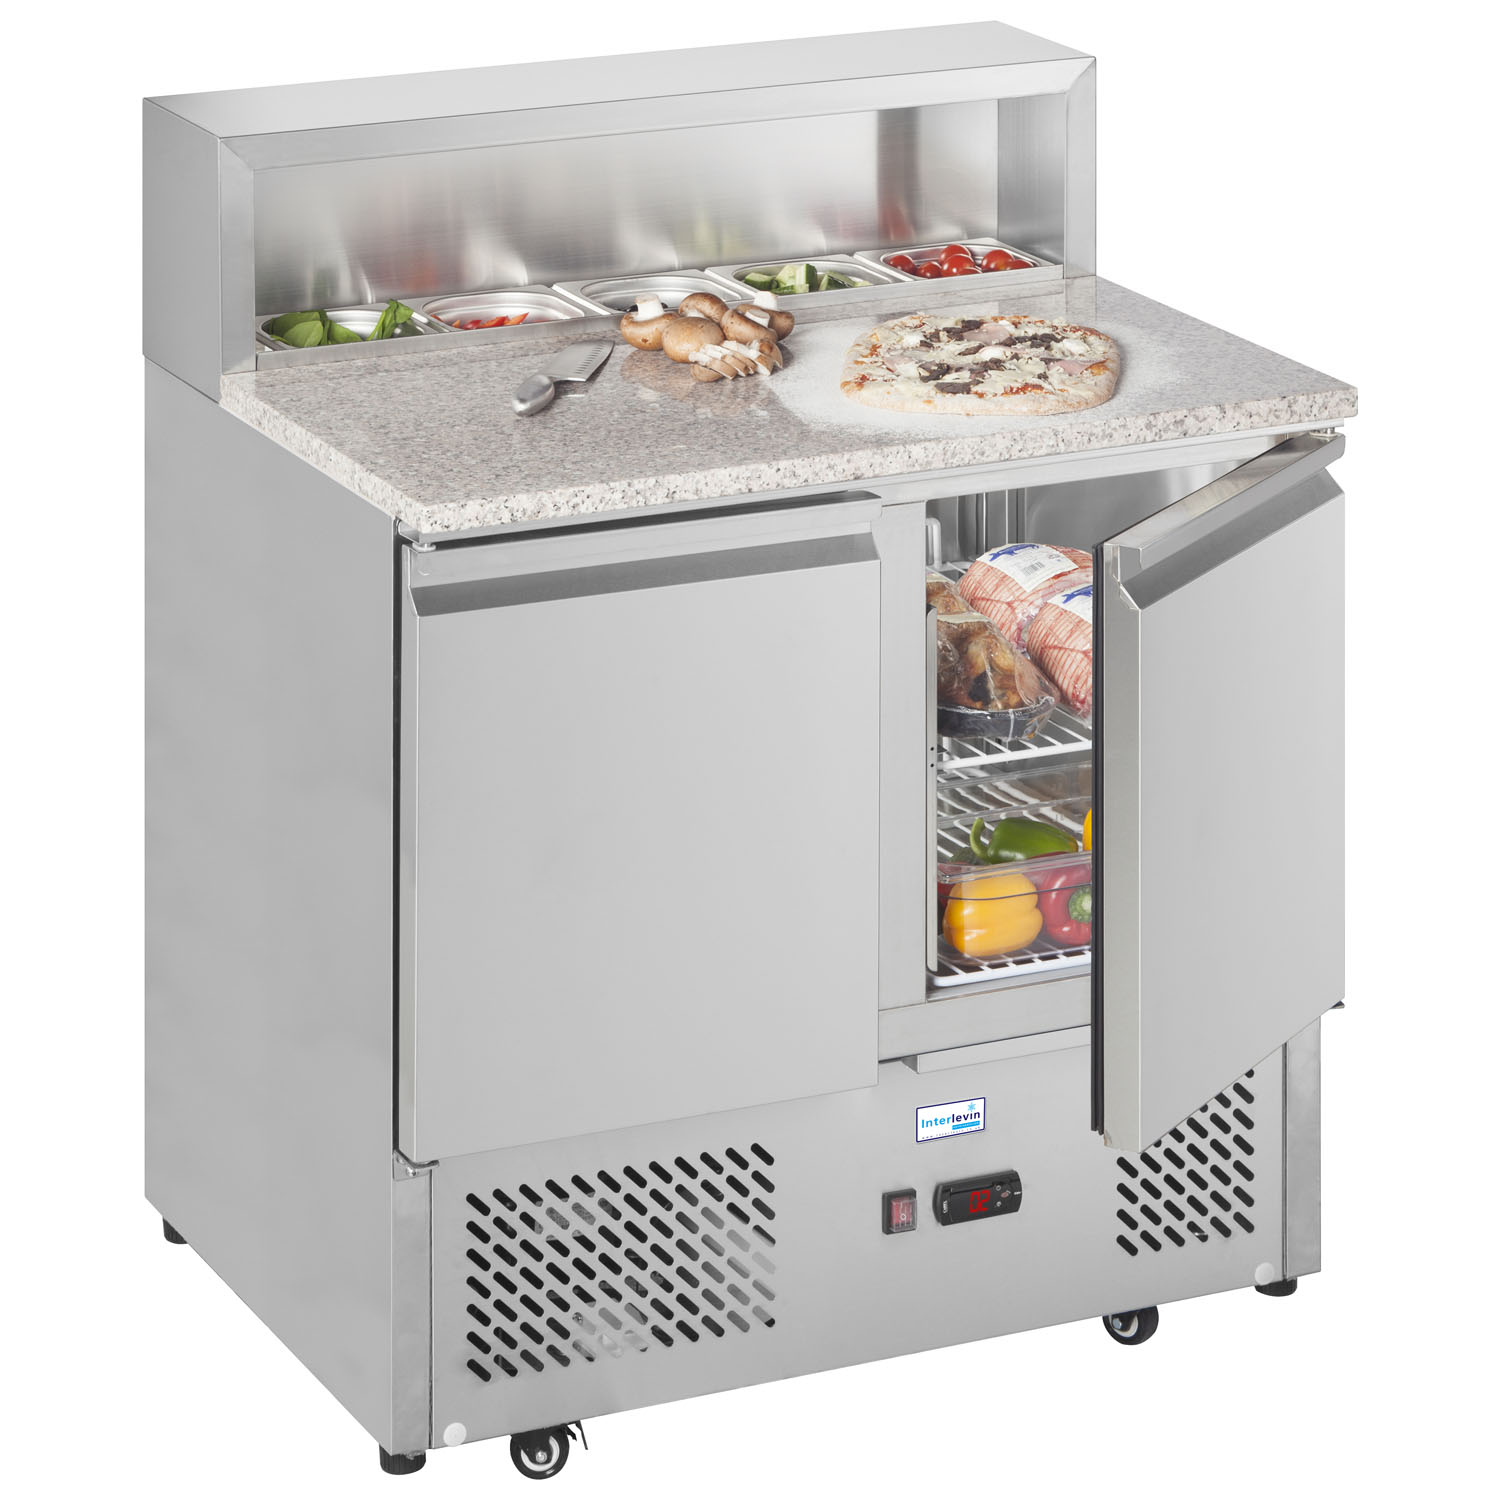 An image of Interlevin EPI900 Refrigerated Prep Counter